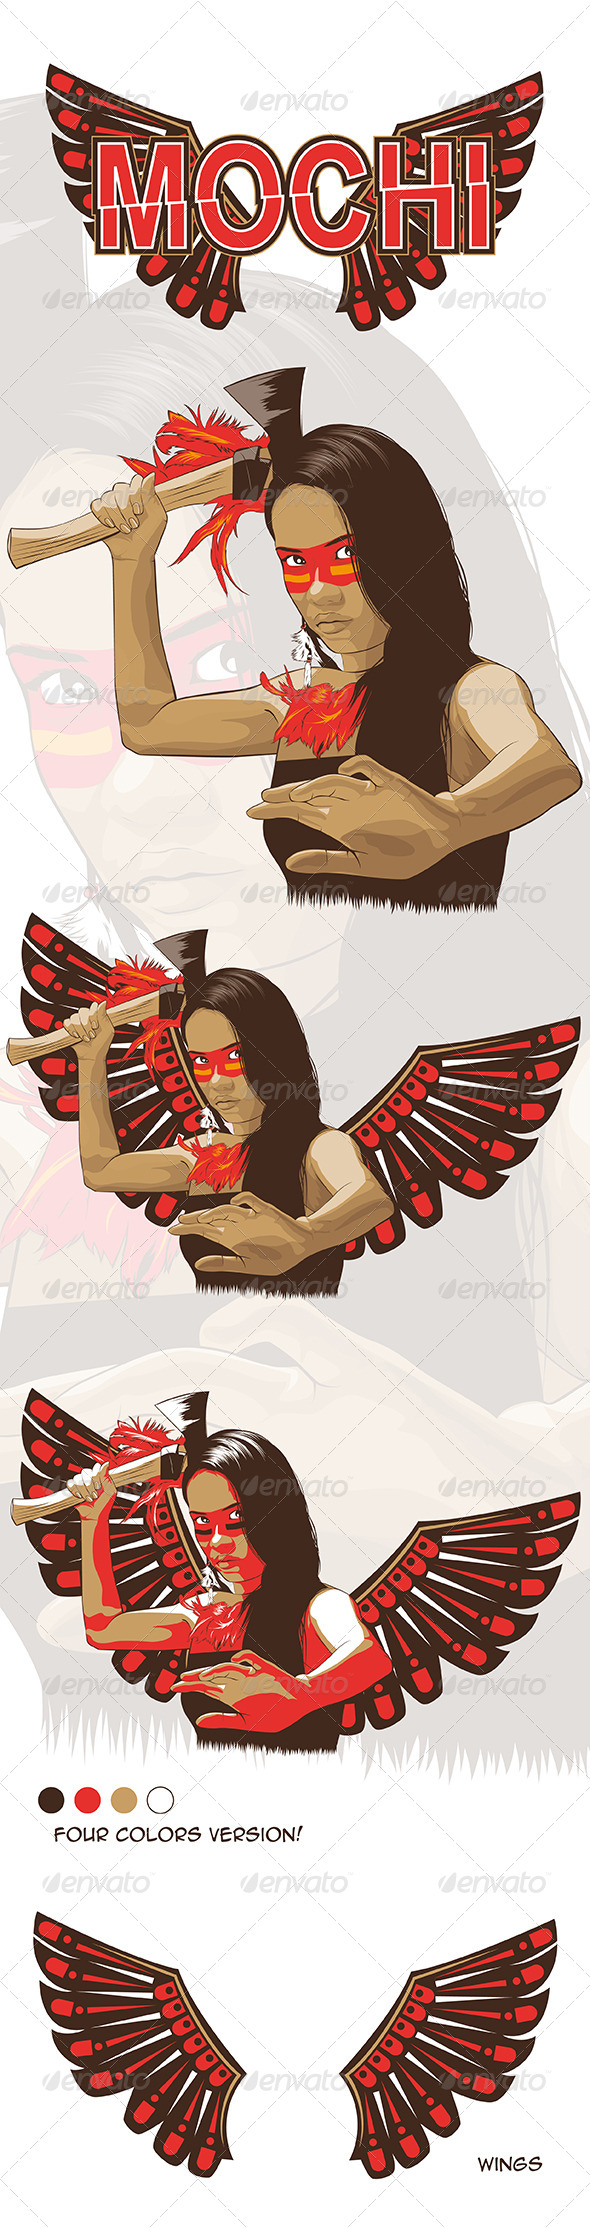 GraphicRiver Native American Indian Girl Vector 7688224